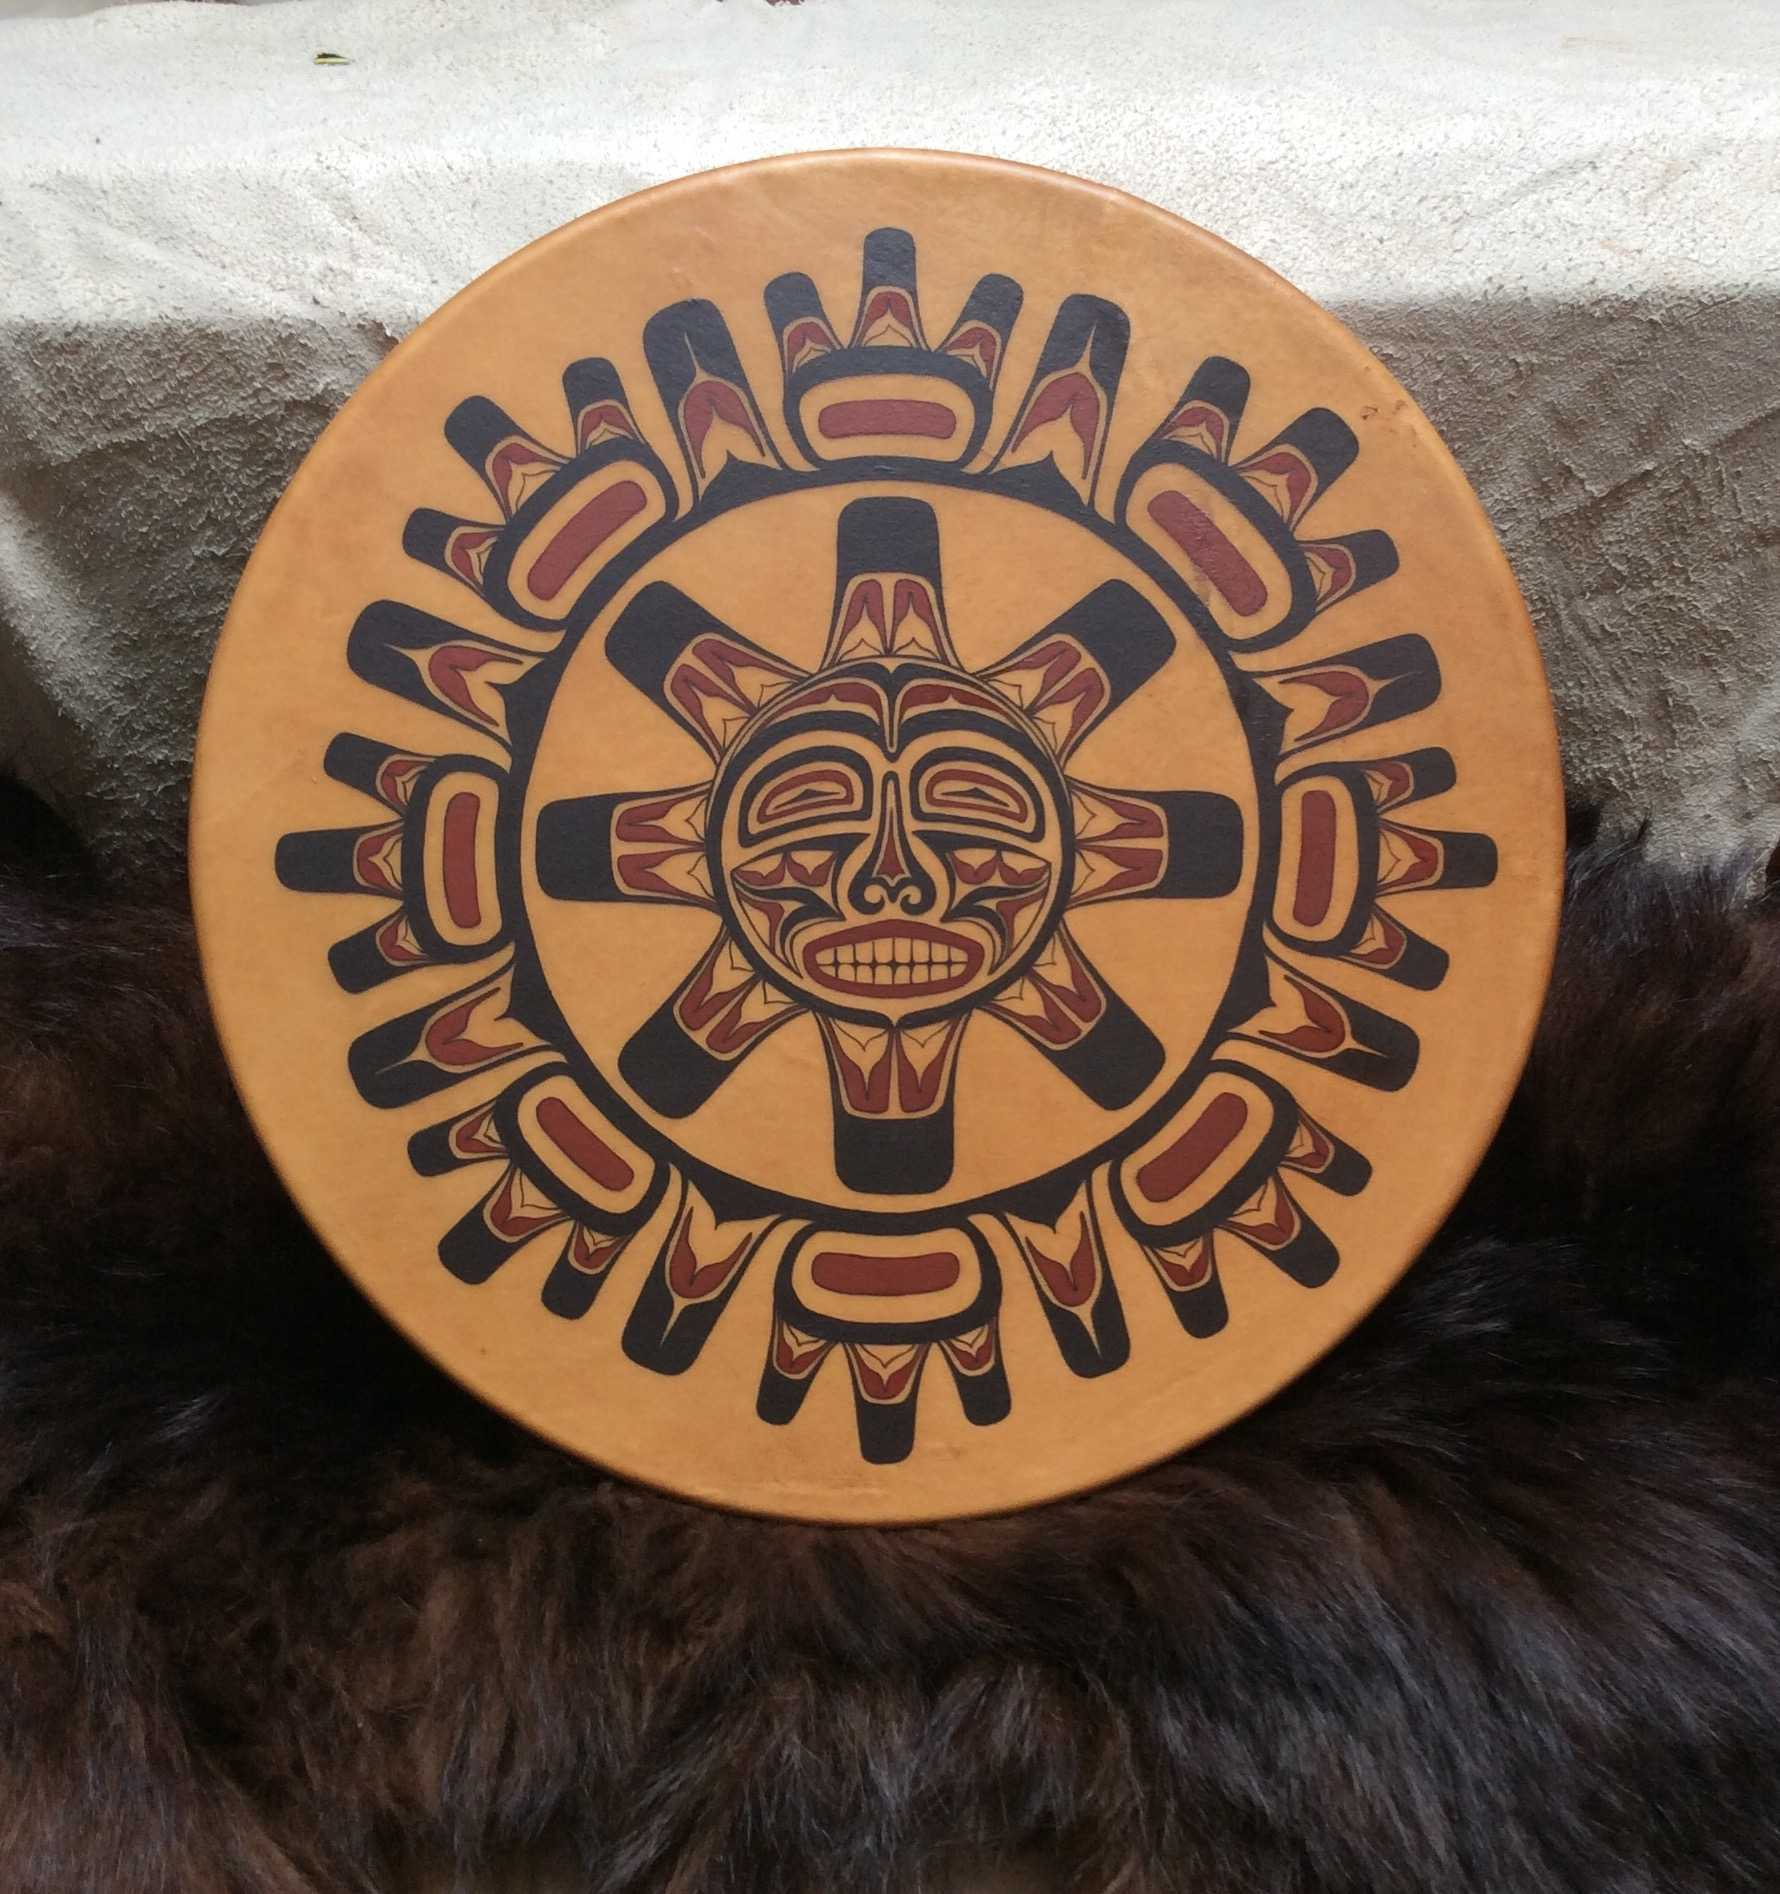 Native American Indian design on round surface